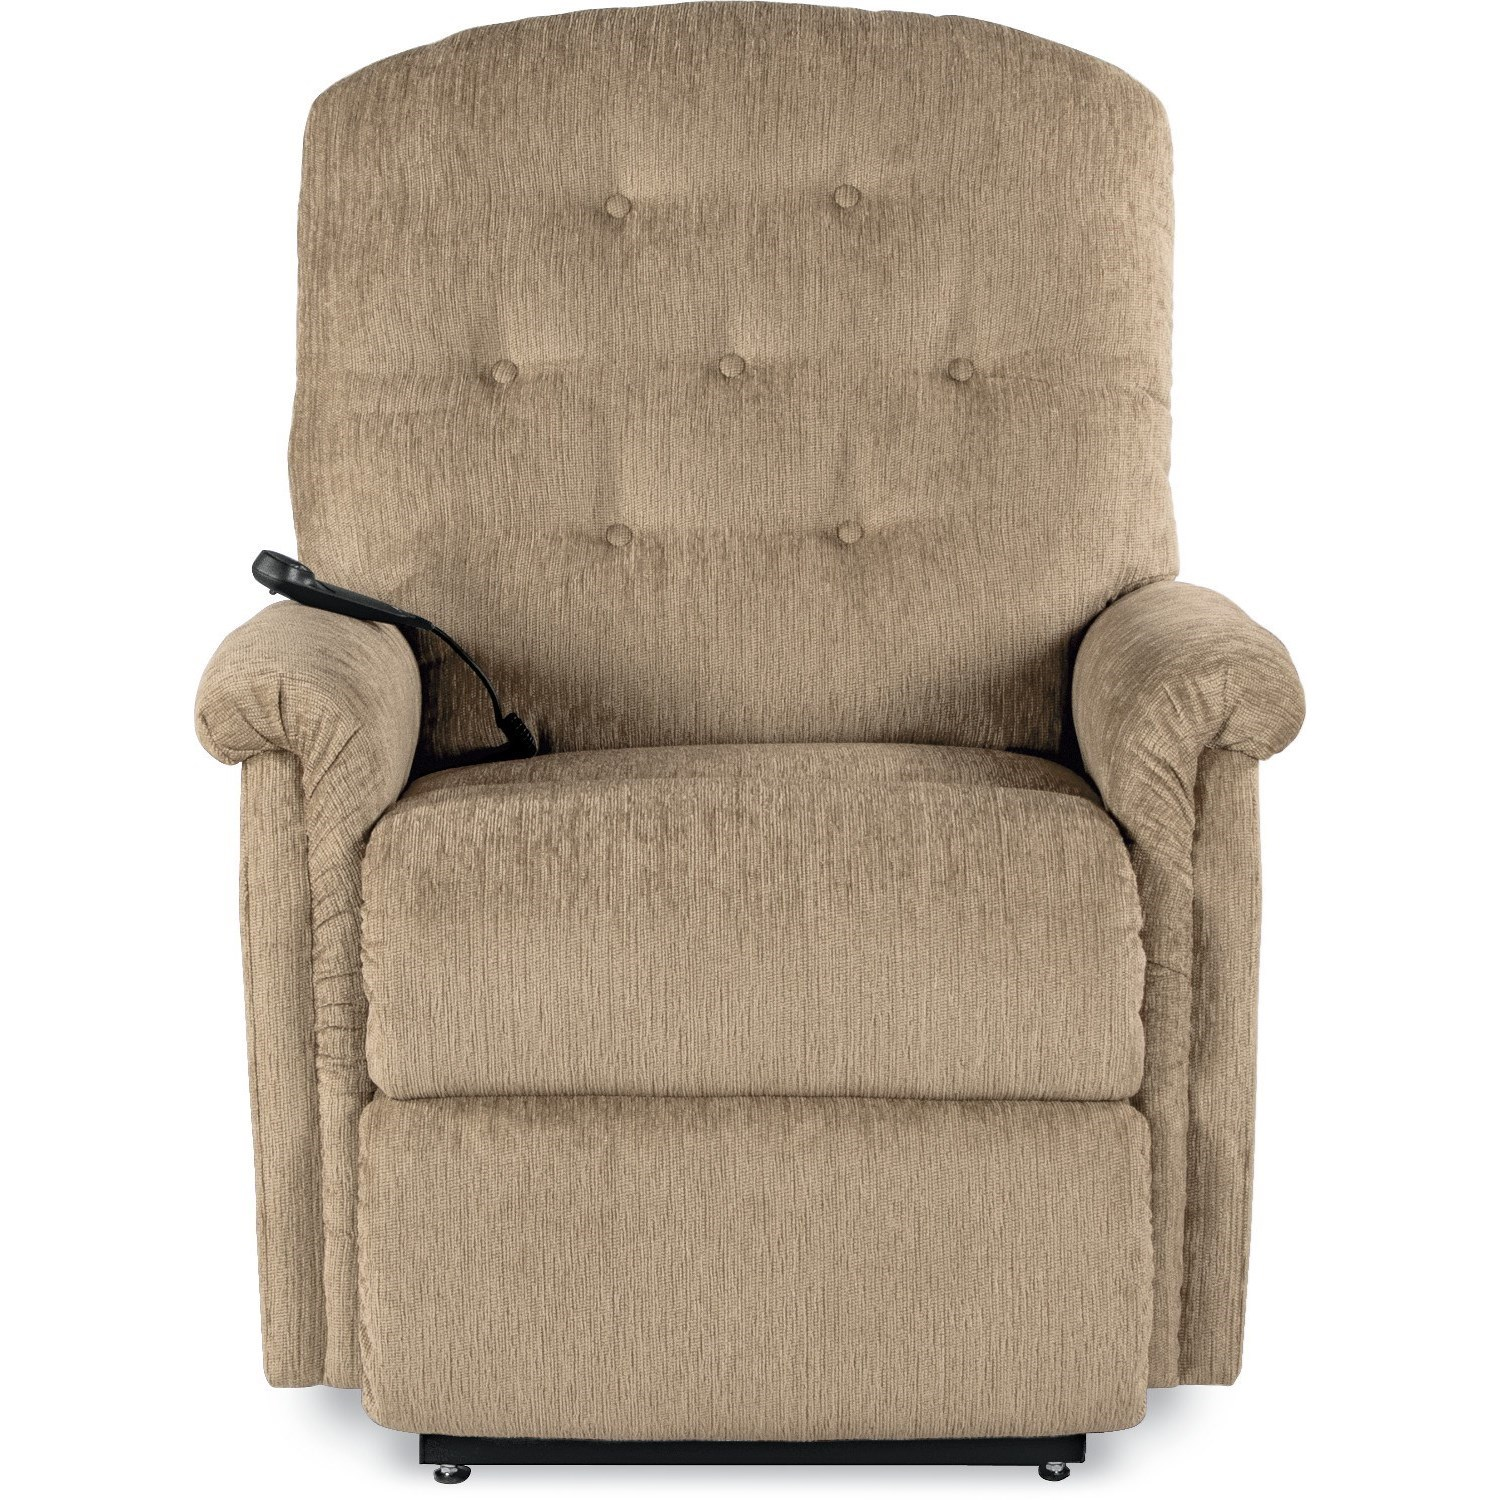 Ally Lift Chair with Recline and Silver Luxury Lift Mechanism